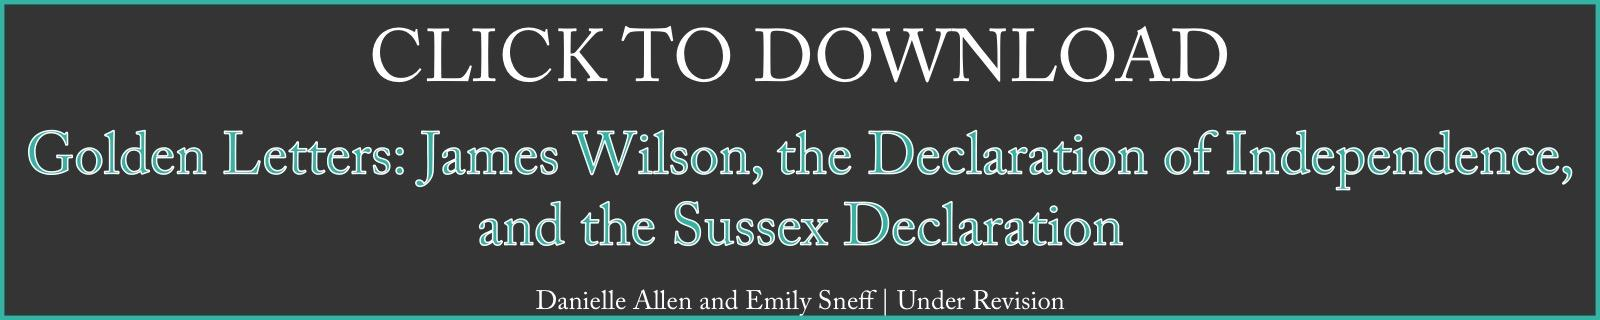 Click to Download Paper on James Wilson and the Sussex Declaration